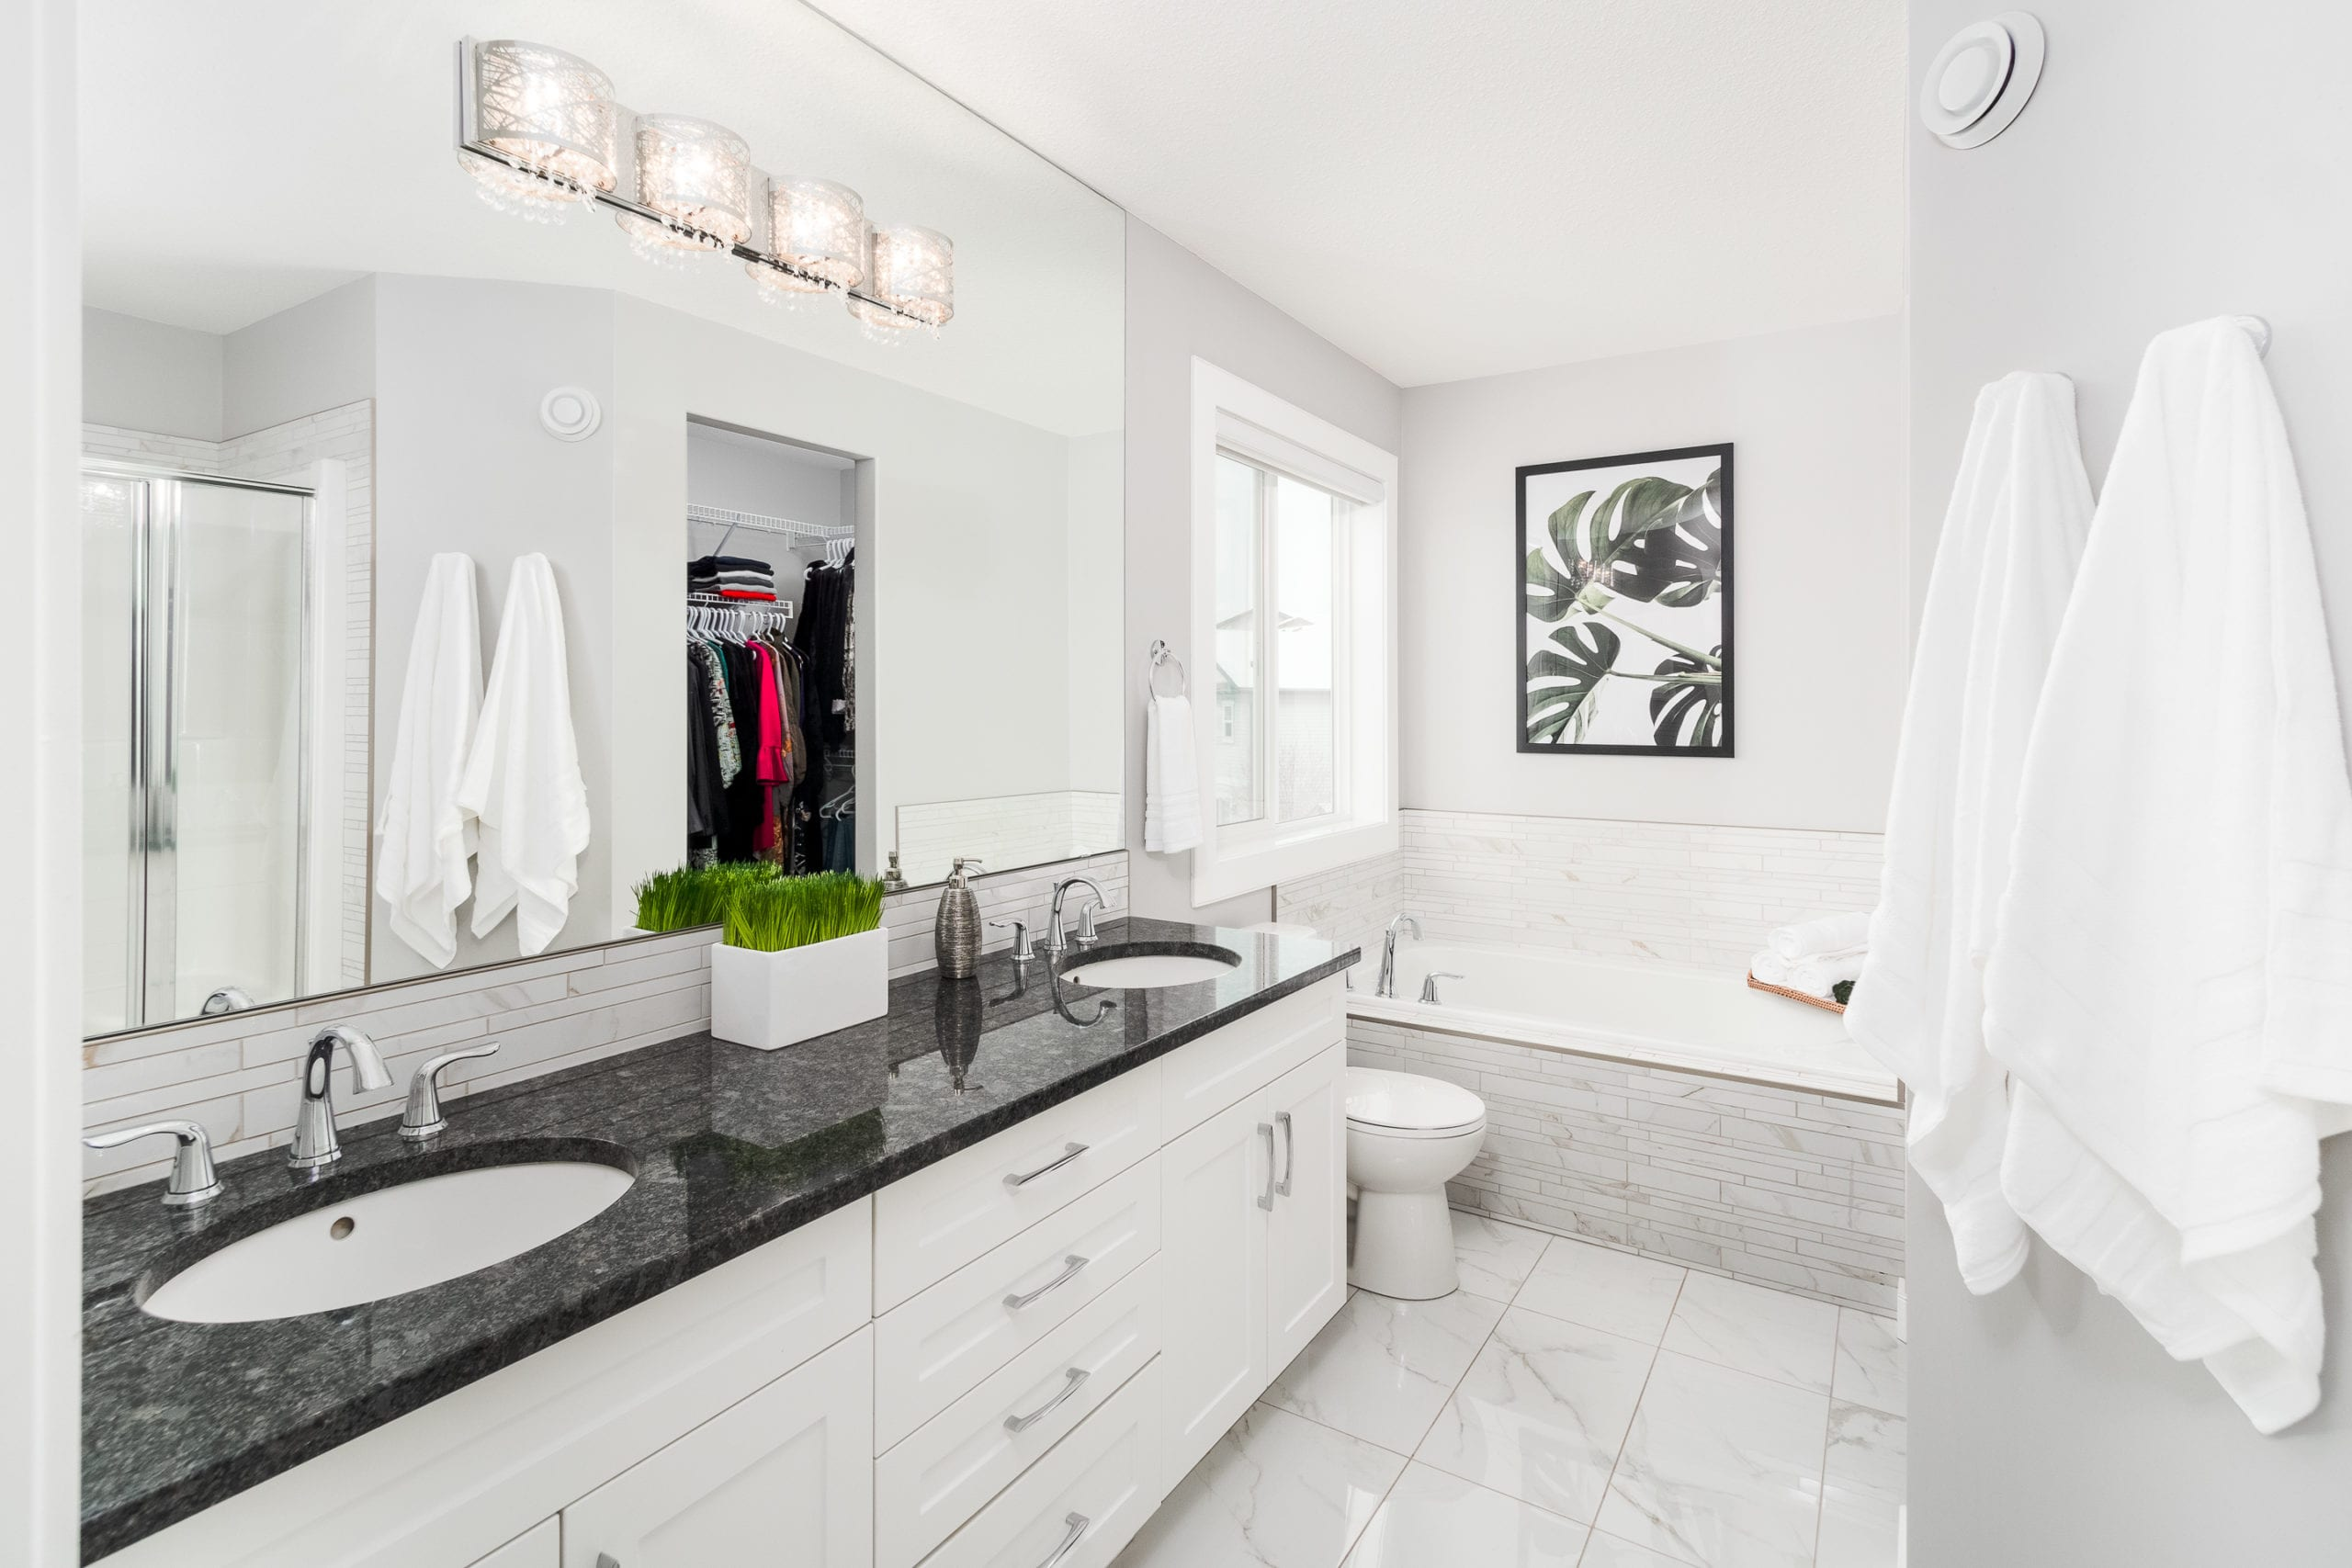 Hello Gorgeous - 1306 Kings Heights Way SE, Airdrie AB. - Tara Molina Real Estate (32 of 53)